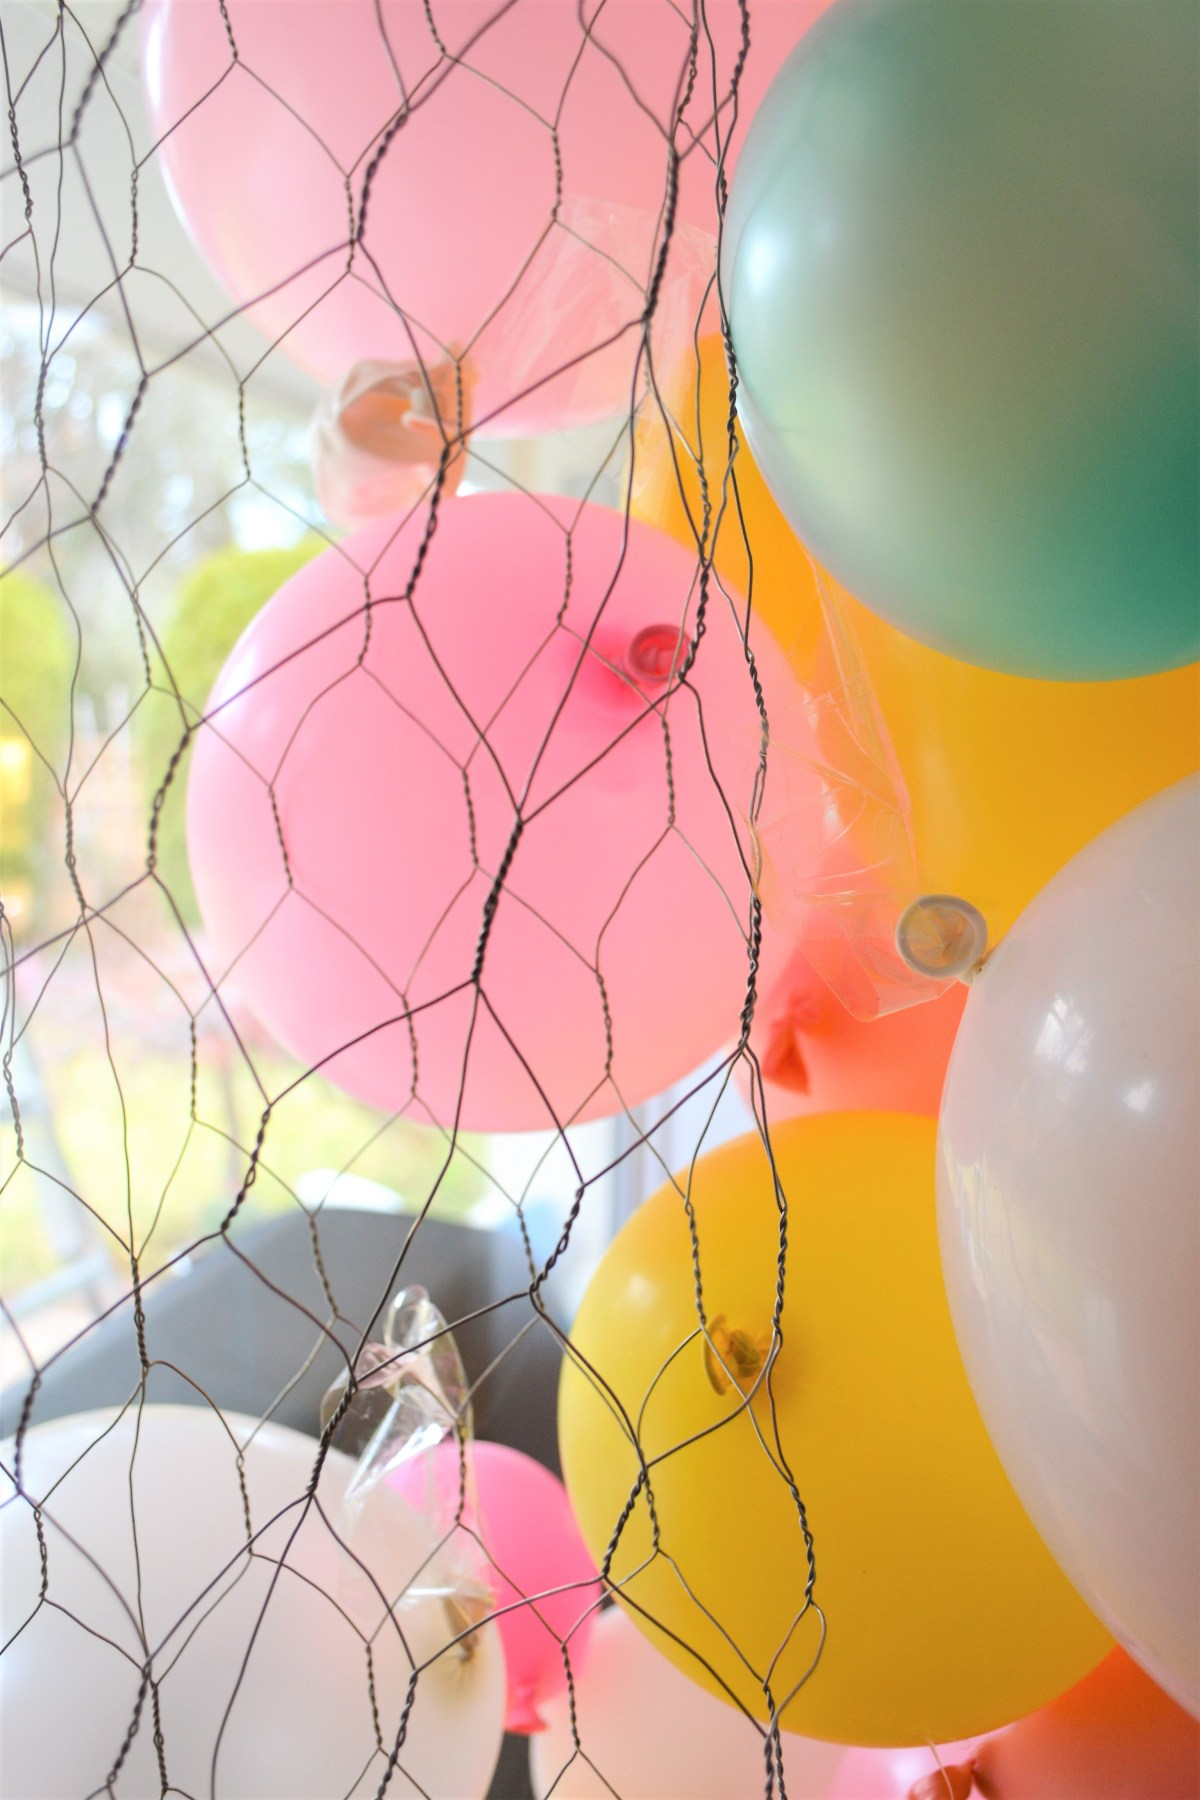 Balloon Arch Tutorial! - Balloons Taped to Chicken Wire